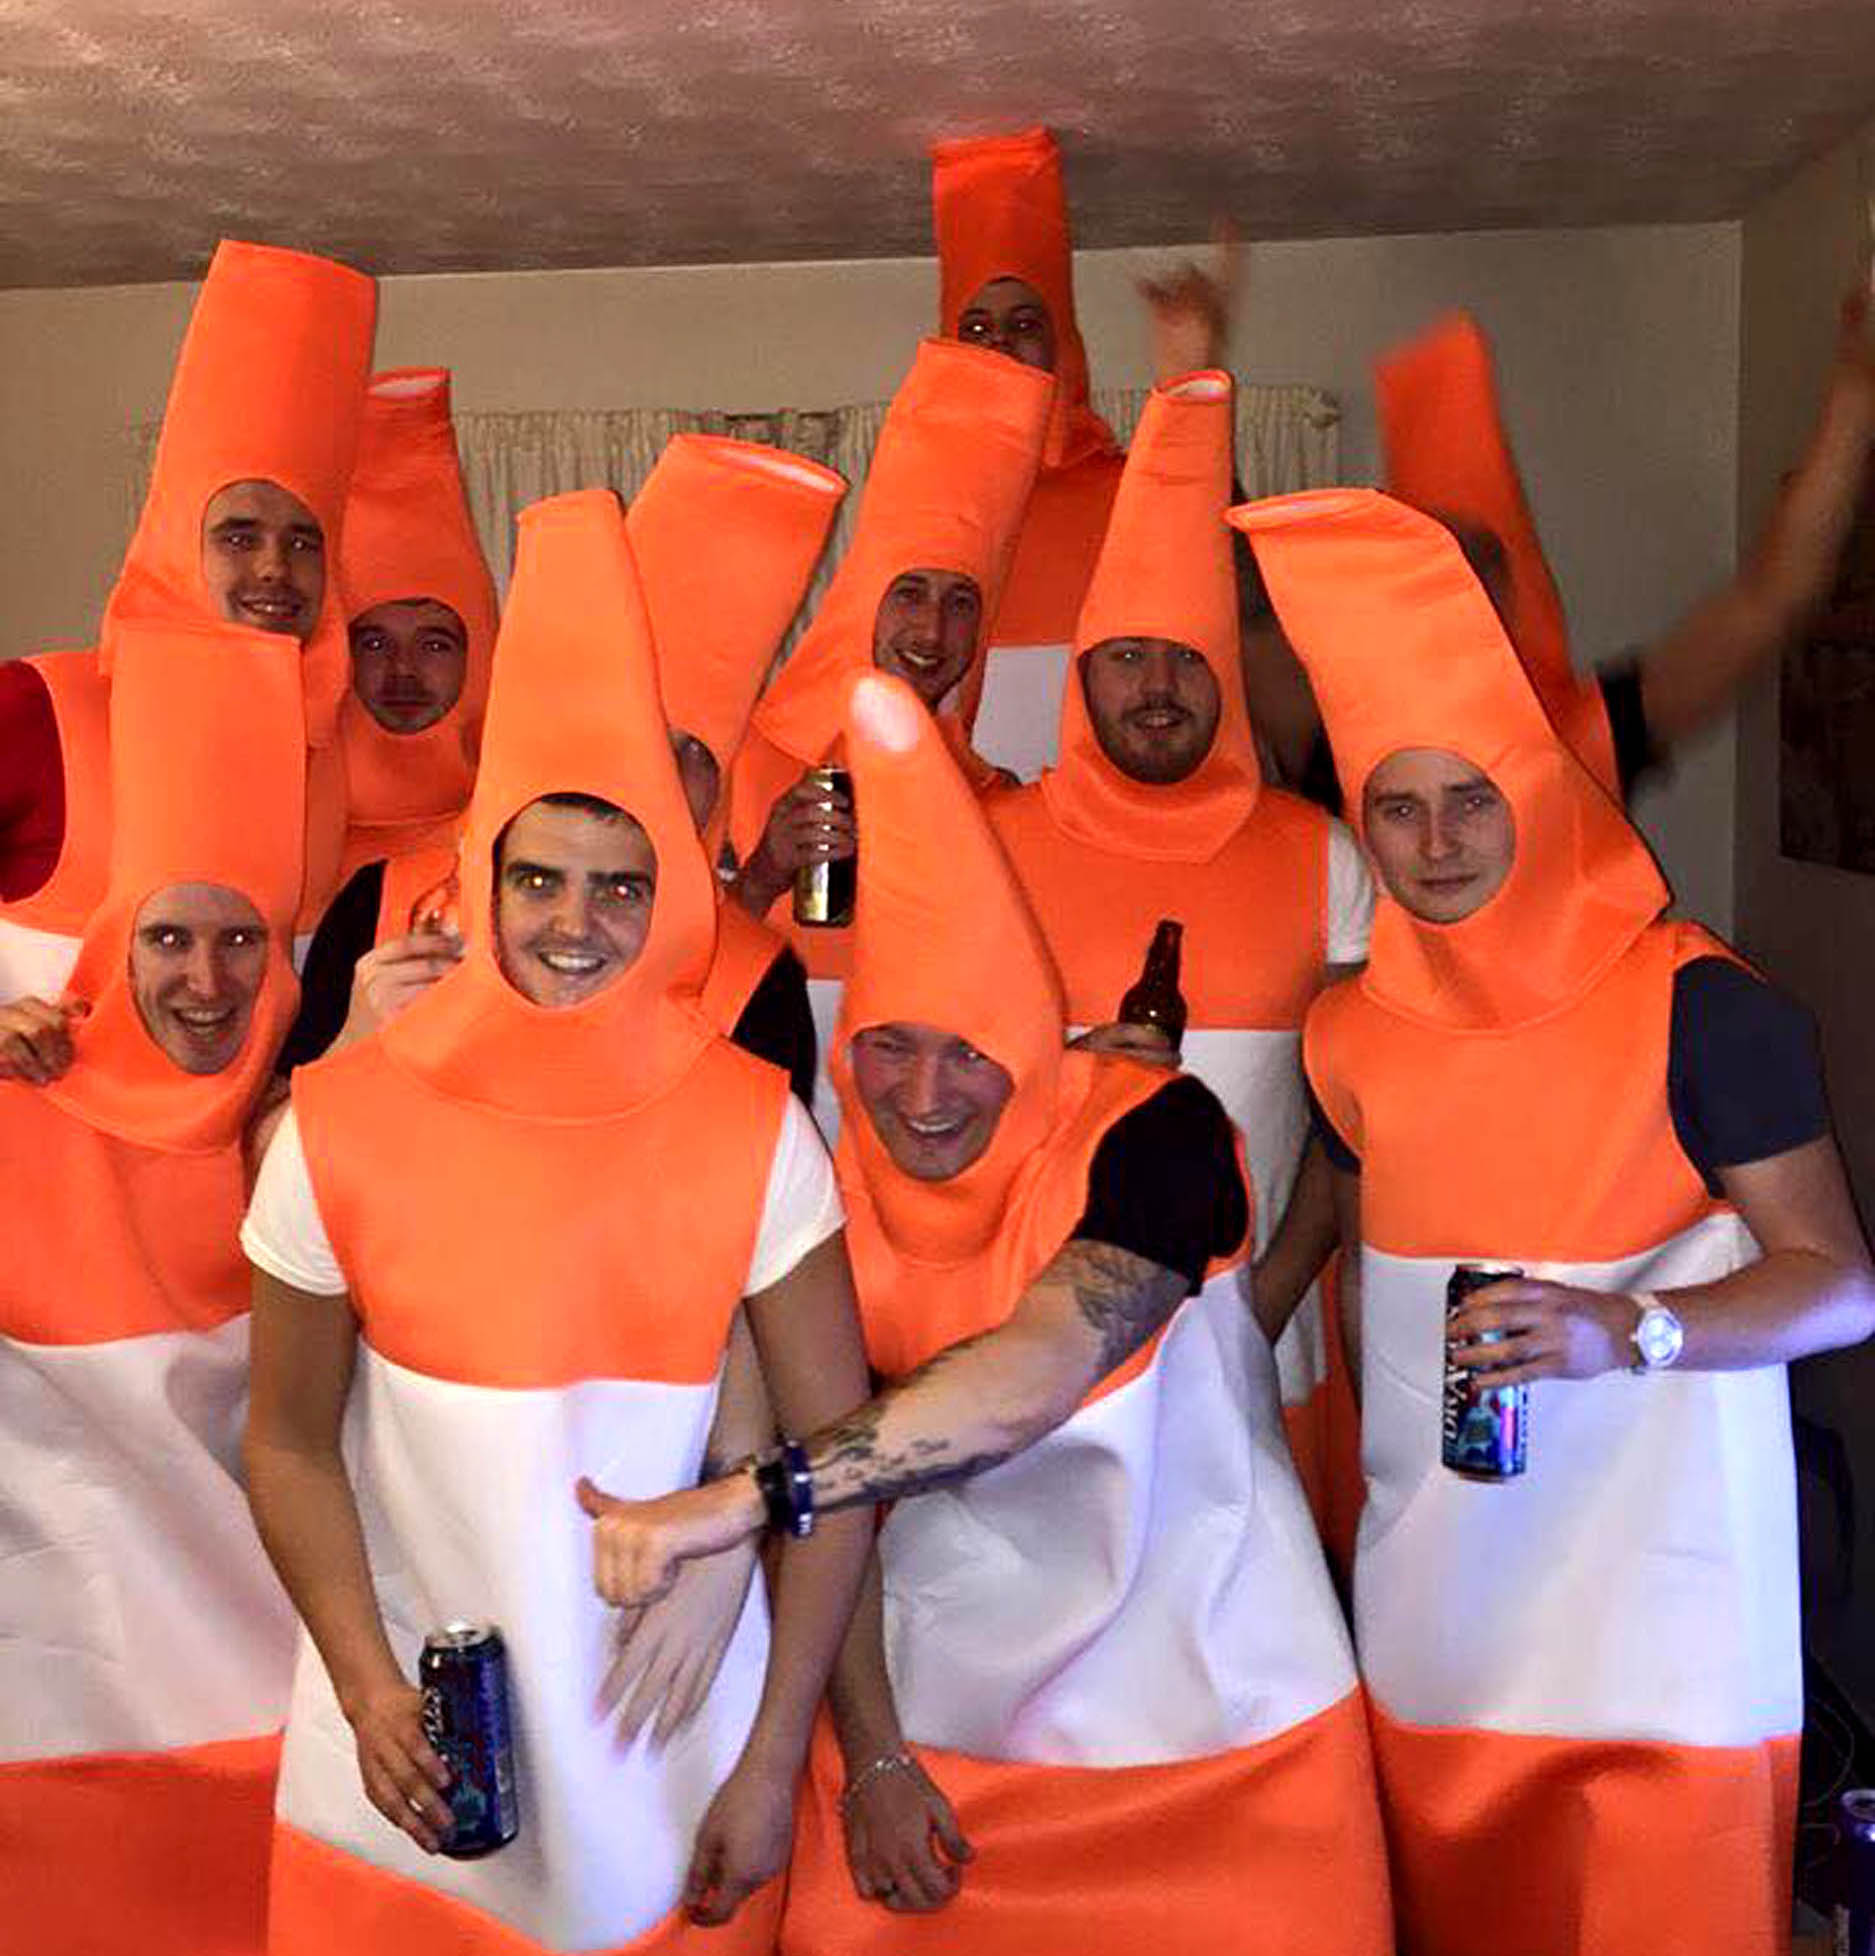 hilarious video shows human traffic cones bringing glasgow to standstill deadline news